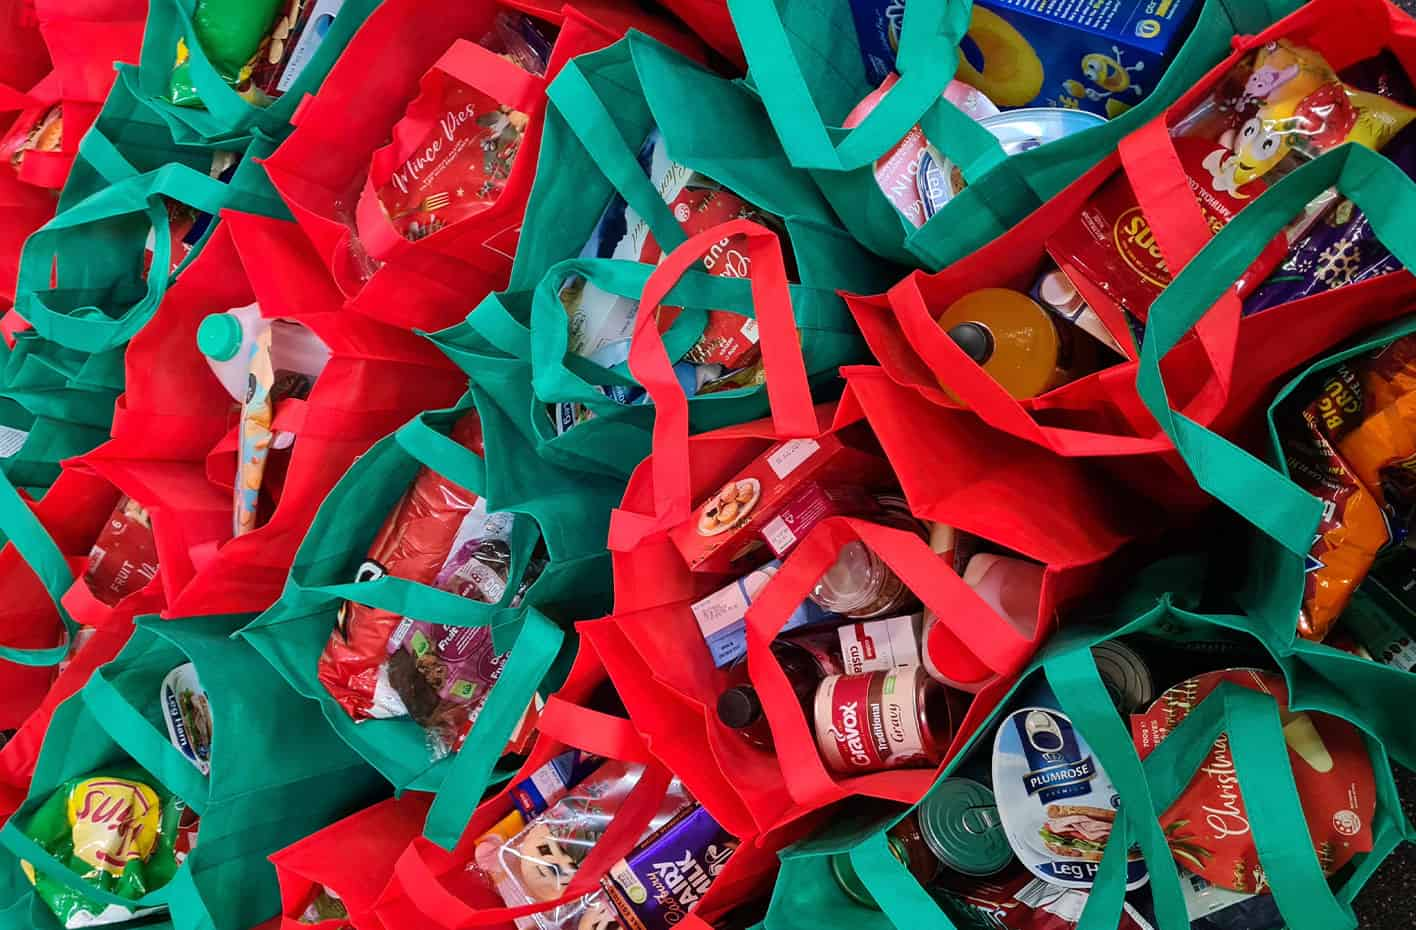 Shopping bags of donated food